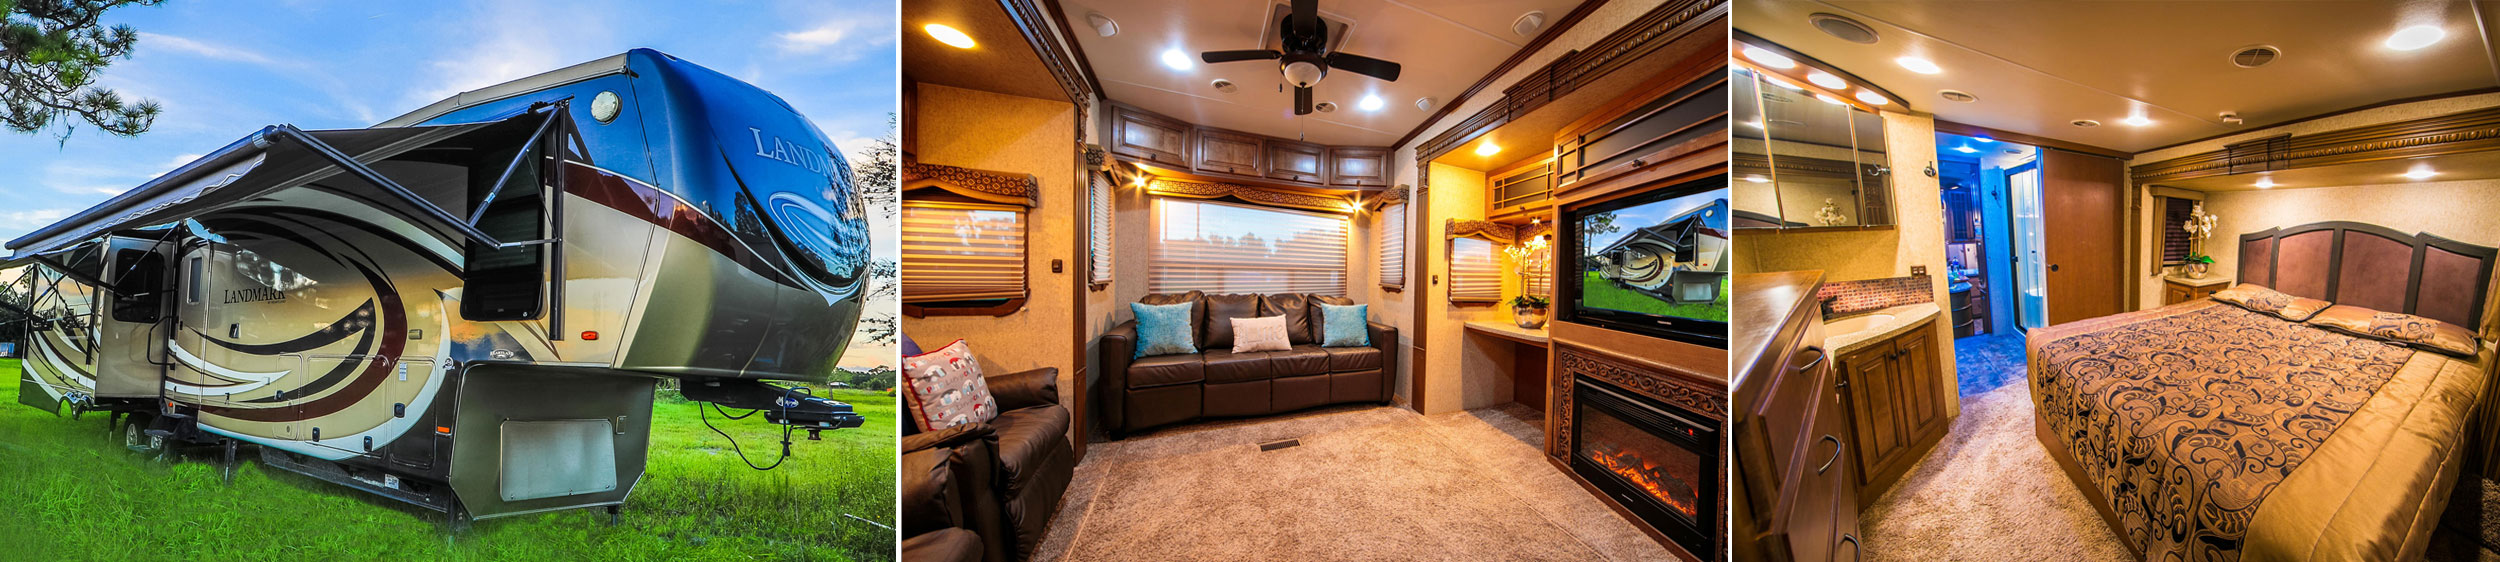 rv rental disney world